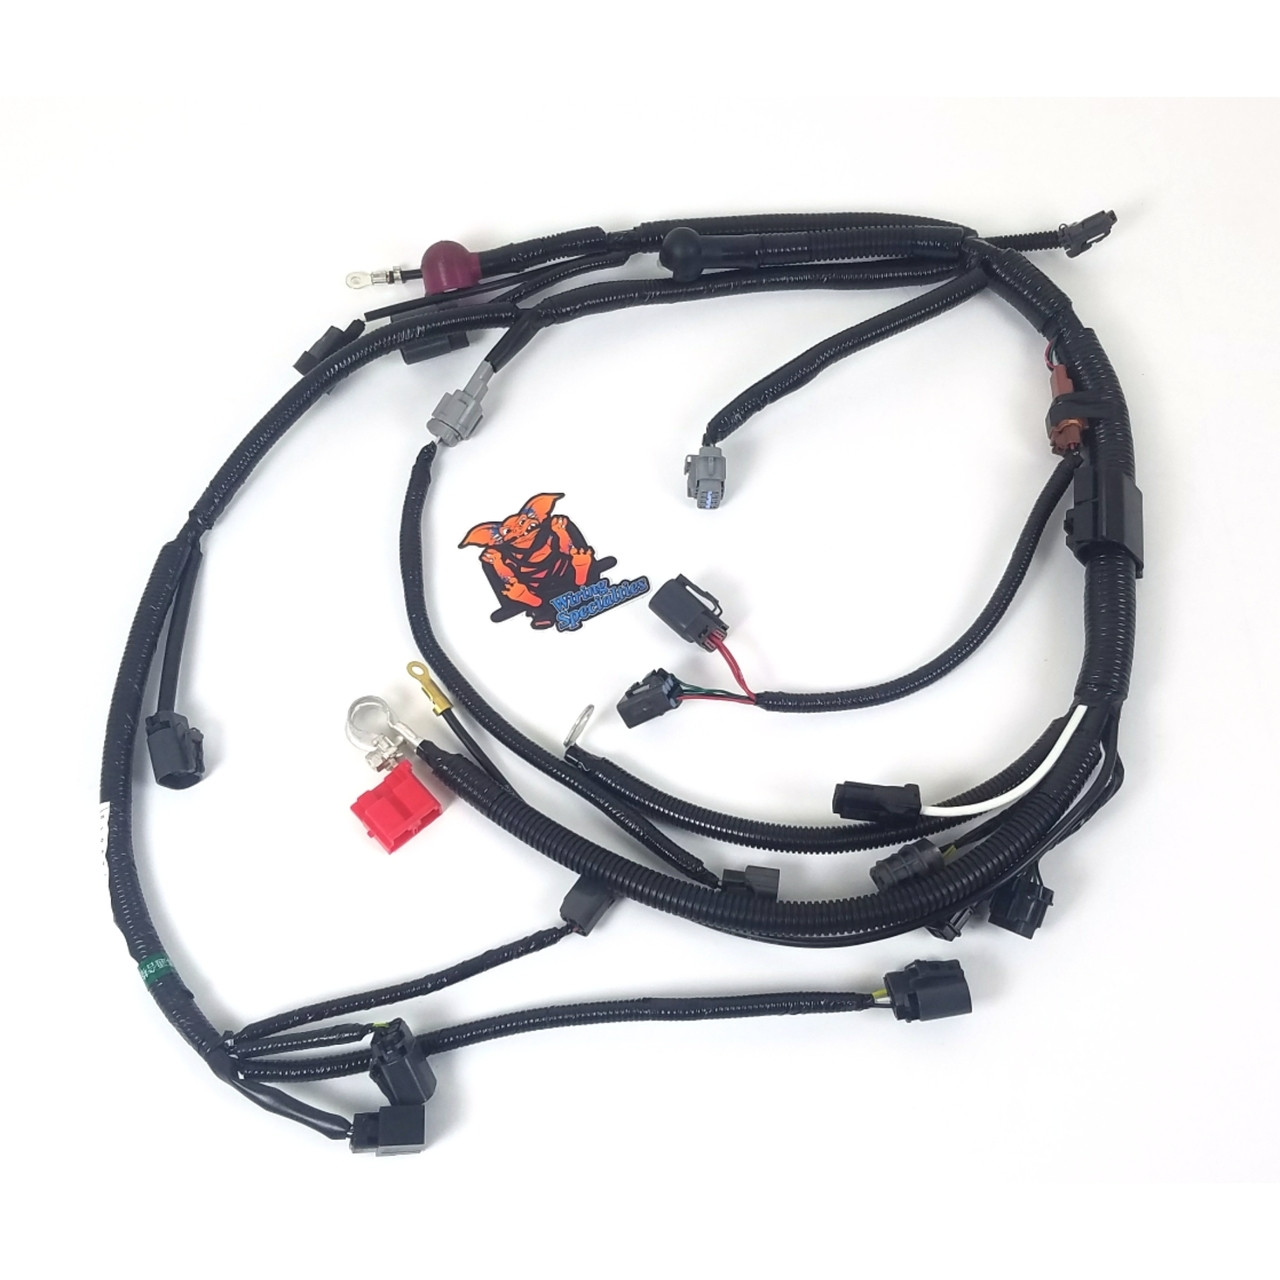 Wiring Specialties - S14 240sx KA24DE Transmission Harness - OEM Series -  TF Works / Touge Factory | Wiring Harness Nissan Ka24 Specs |  | Touge Factory